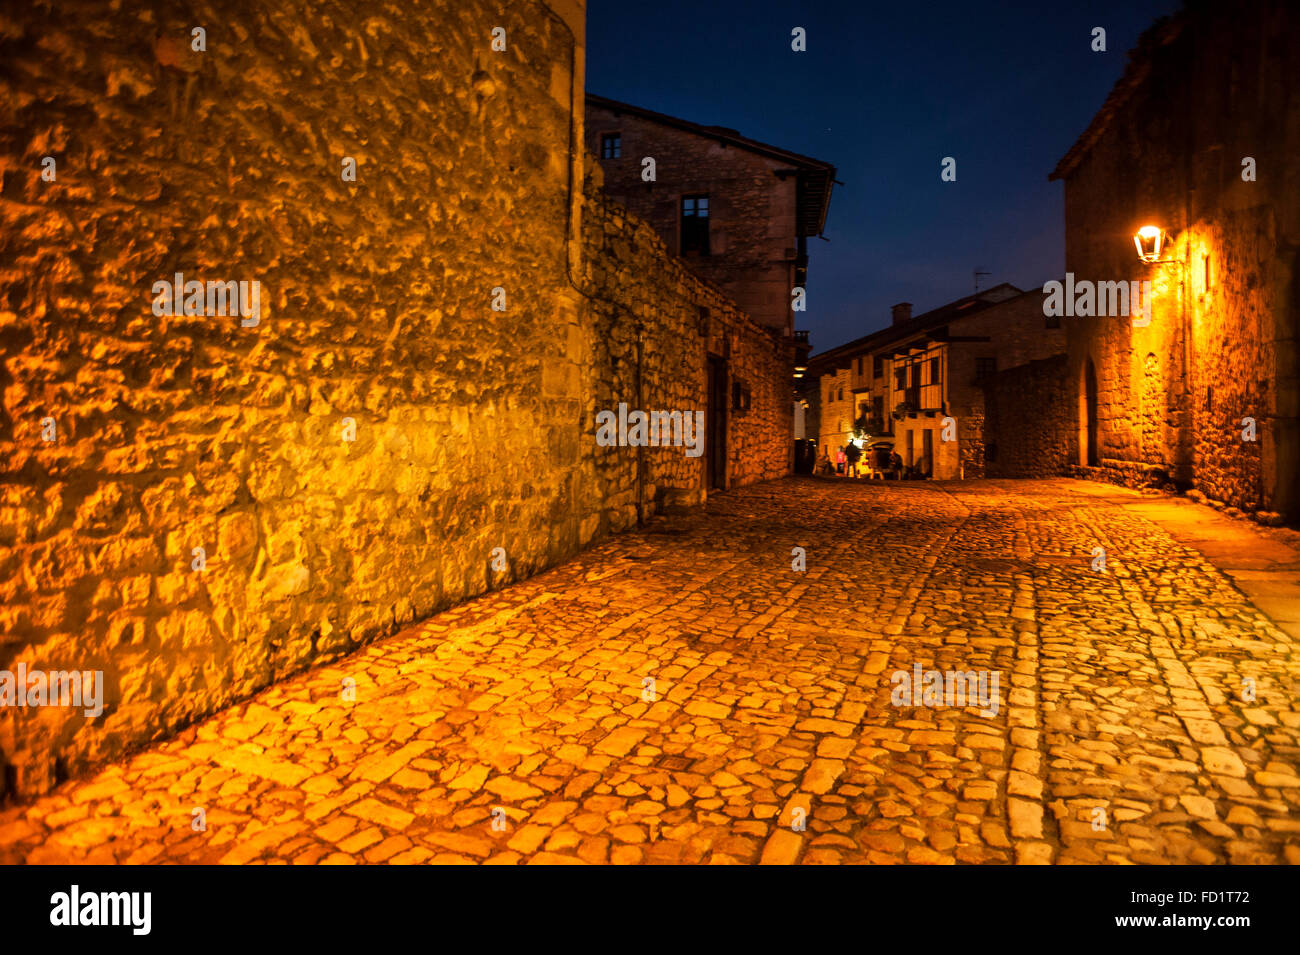 View of the typical narrow cobbled streets of the medieval village of Santillana del Mar Stock Photo